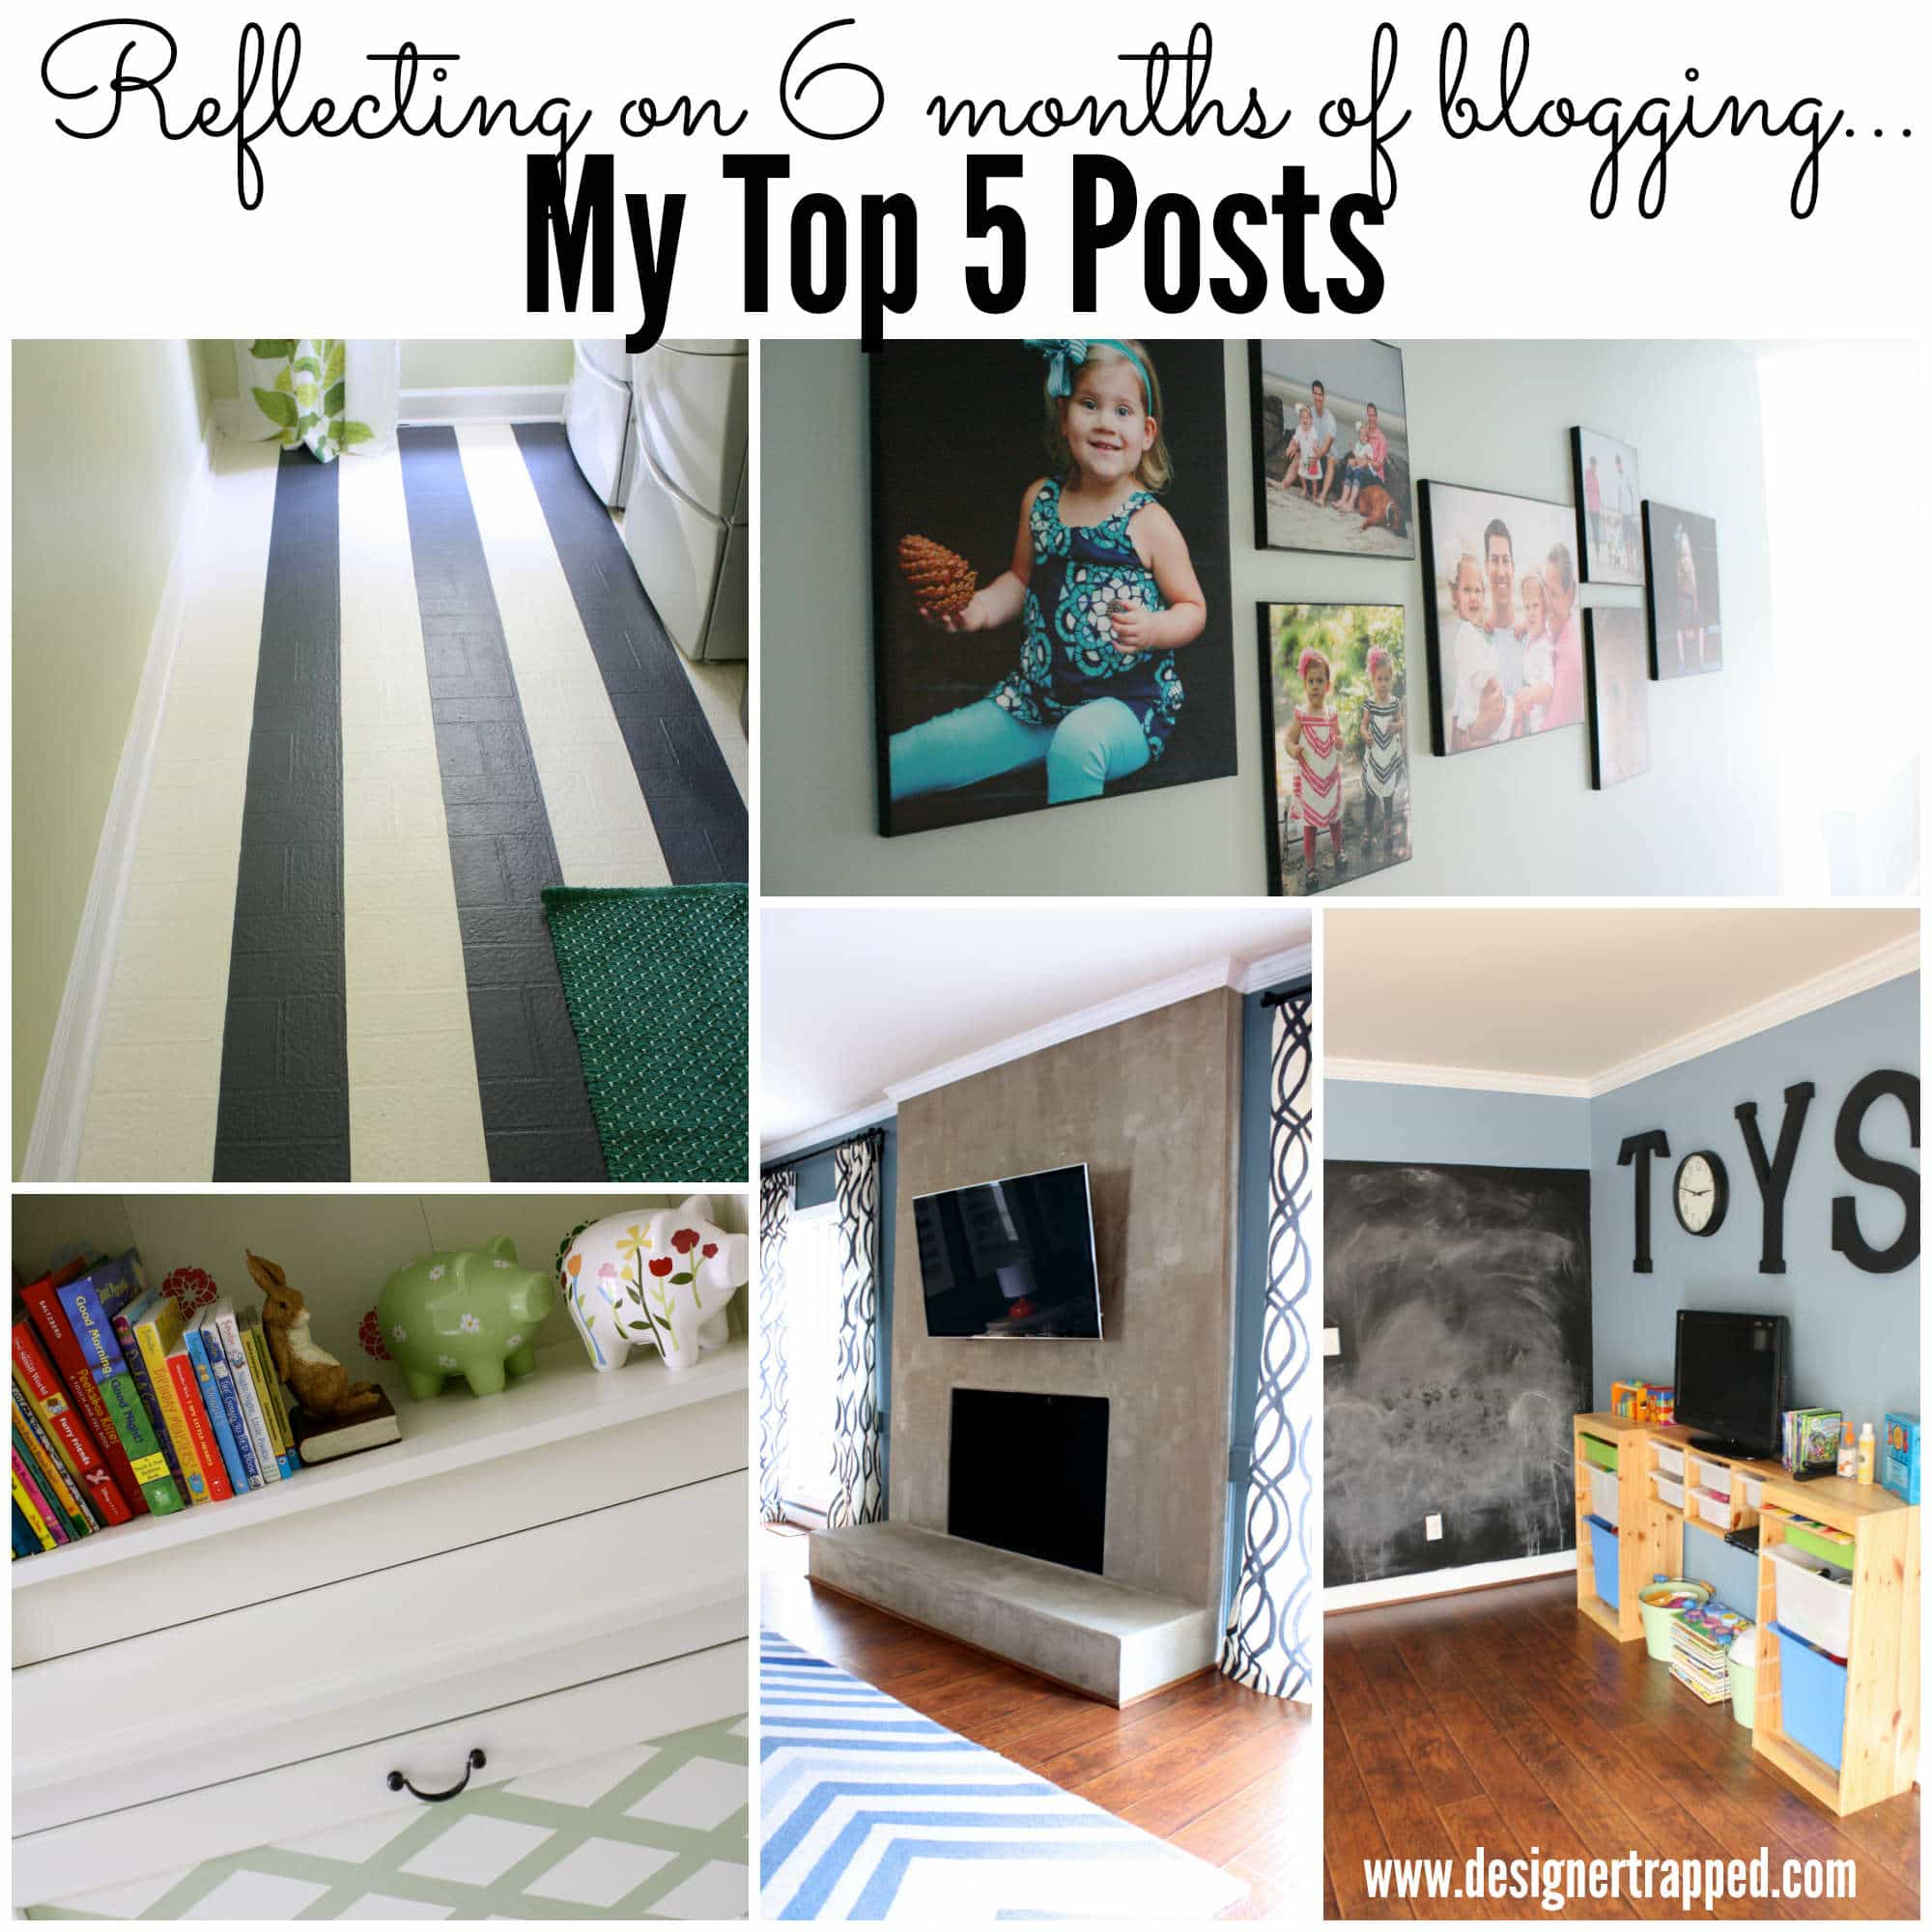 Pin now, read later!  My Top 5 posts after 6 months of blogging by Designer Trapped in a Lawyer's Body {www.designertrapped.com}